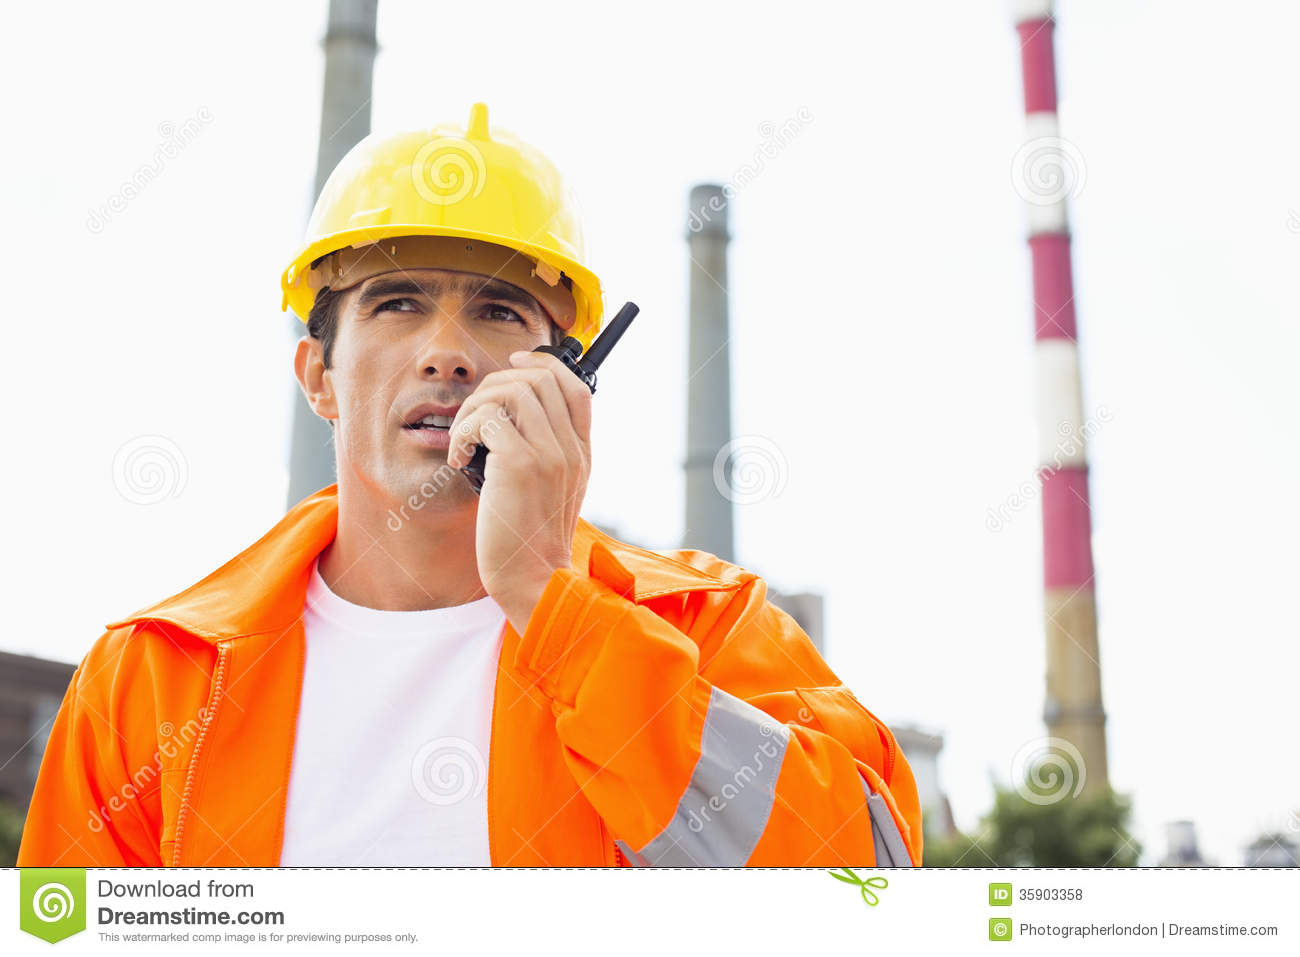 Royalty Free Stock Photos: Male construction worker wearing reflective ...